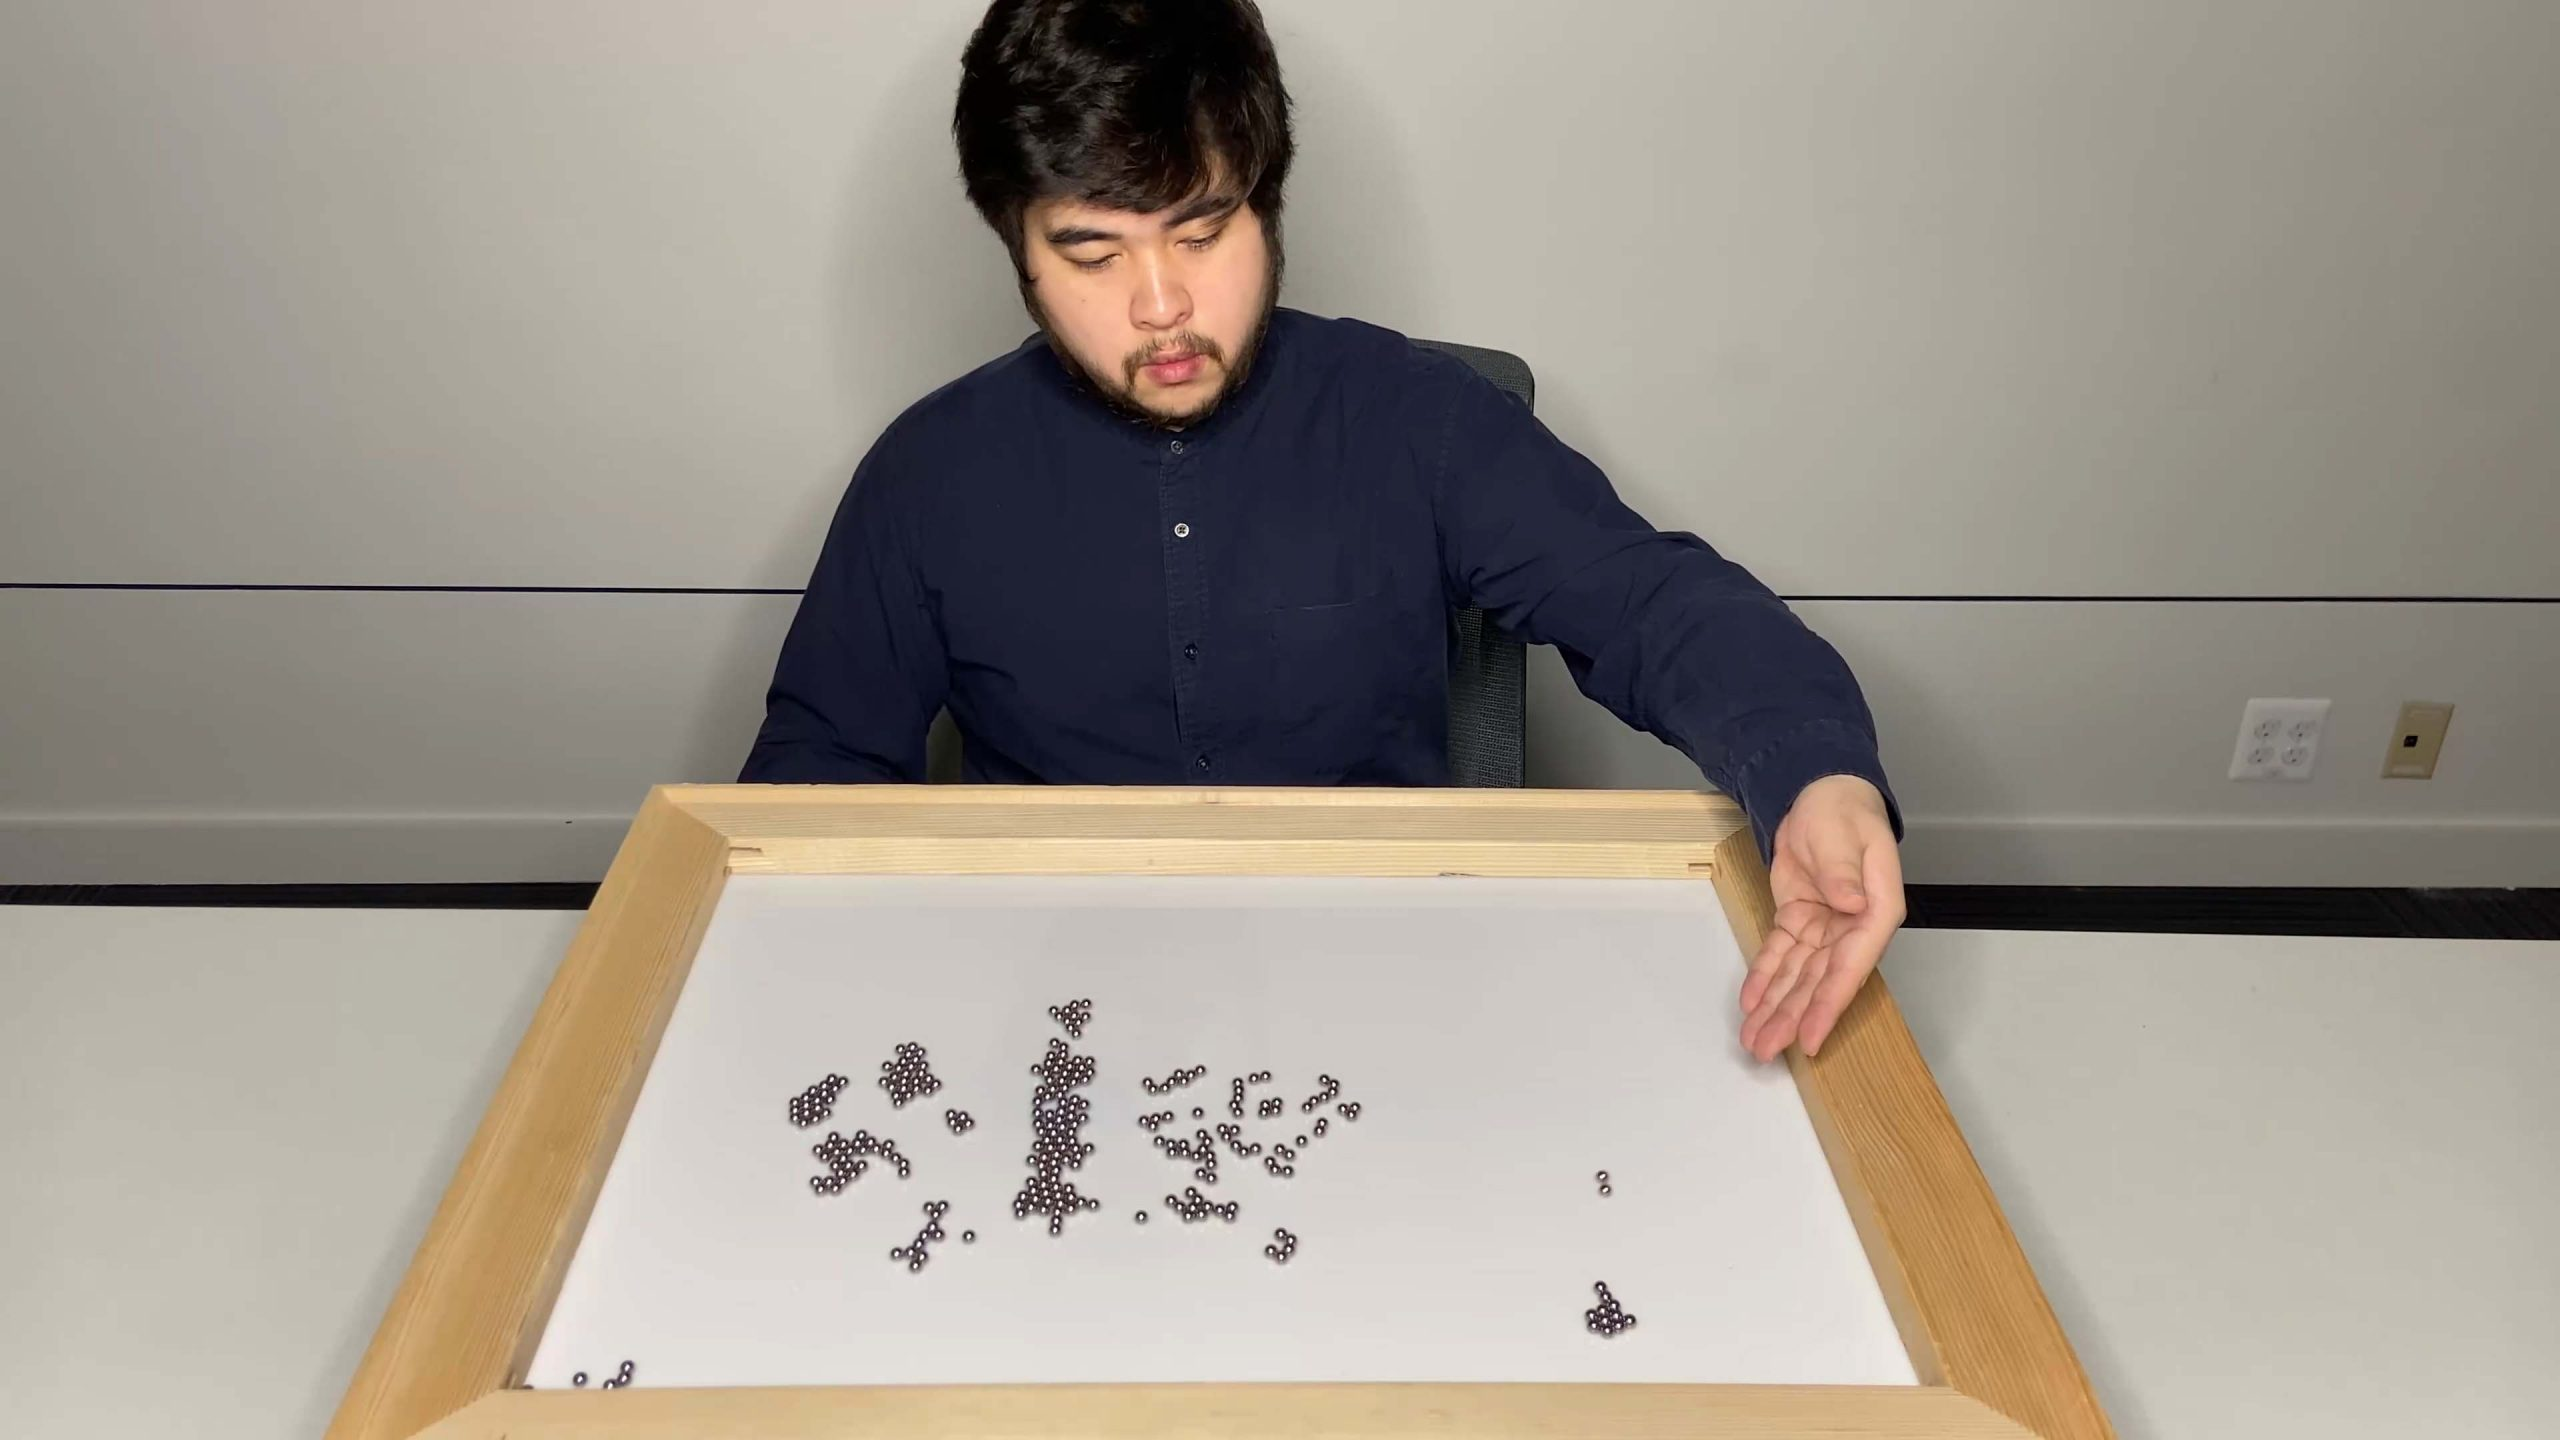 A person sitting down observing small moving objects in a light wood frame laid flat on the table.